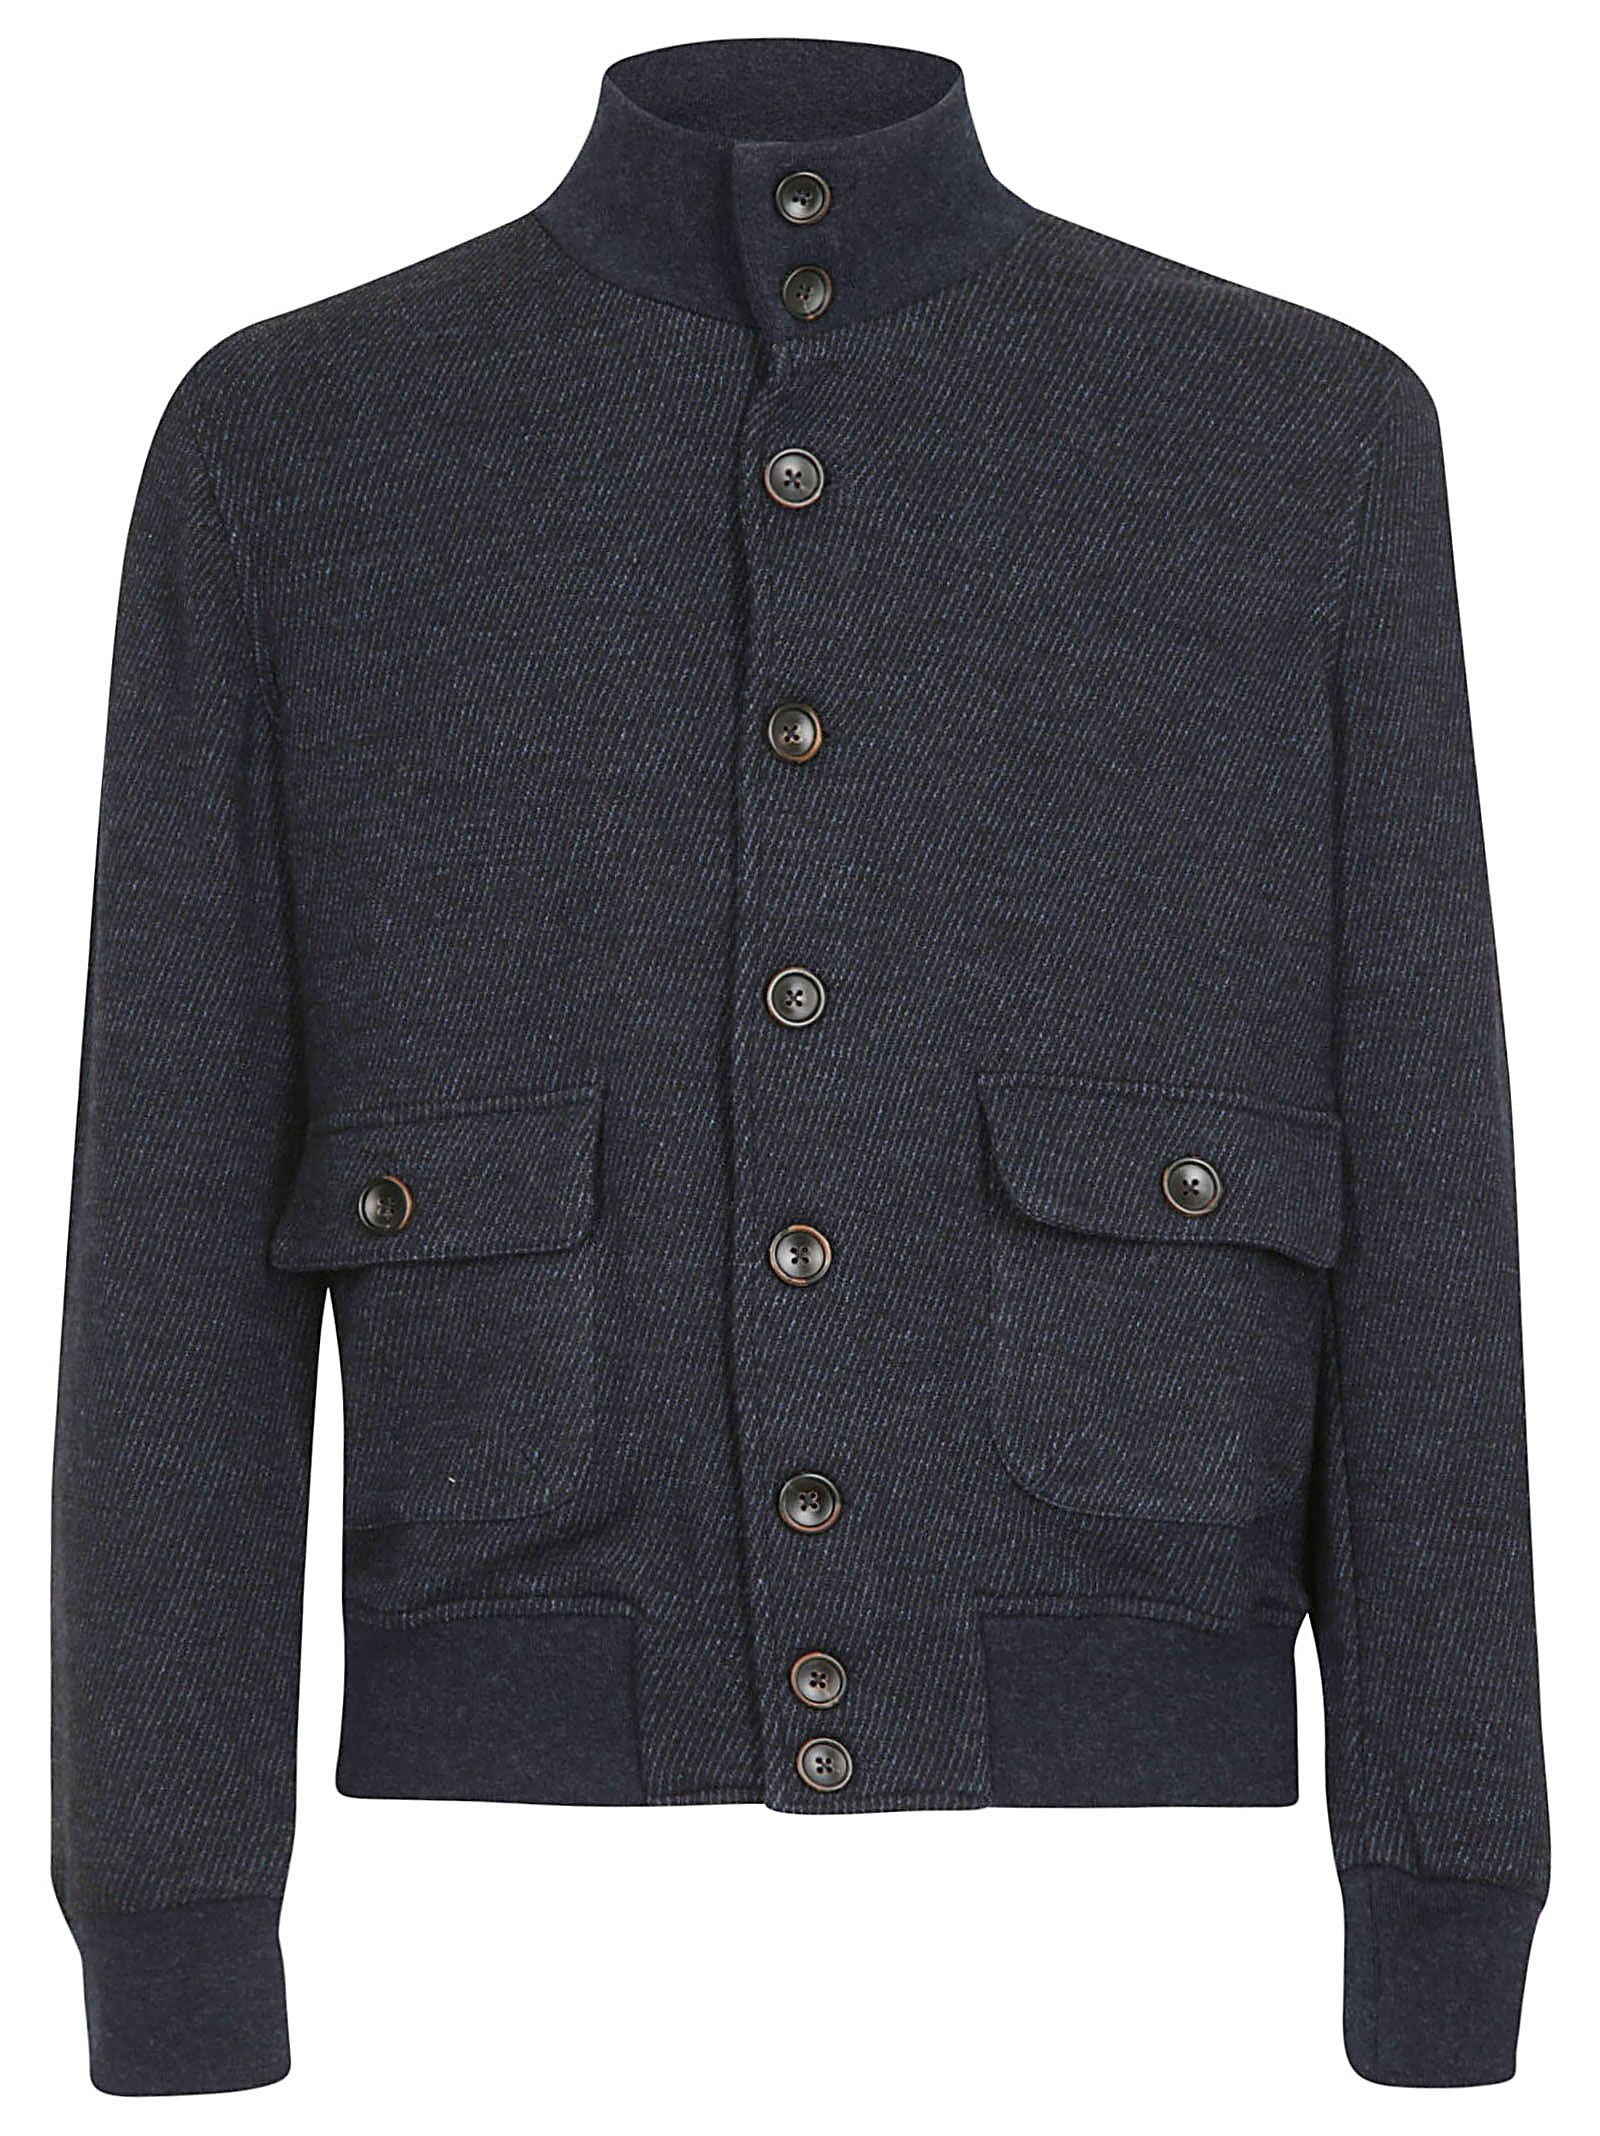 CAPOBIANCO Button-Up Bomber in Blue